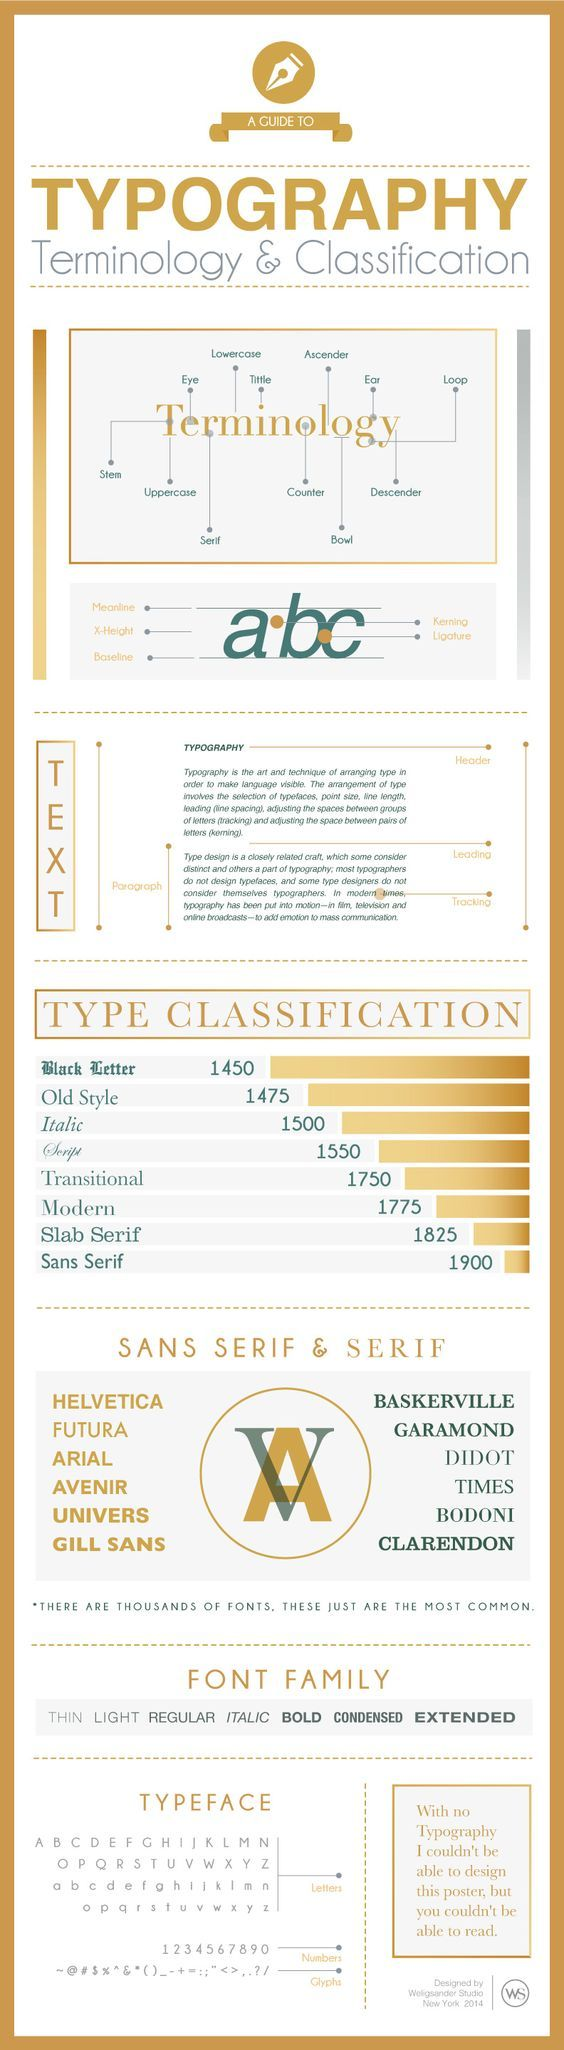 No matter what your stage in the book development process, having a grip of solid typography principles can be a helpful asset in the pursuit of quality design and marketing. This the case, here's a useful infographic that breaks down the basics::